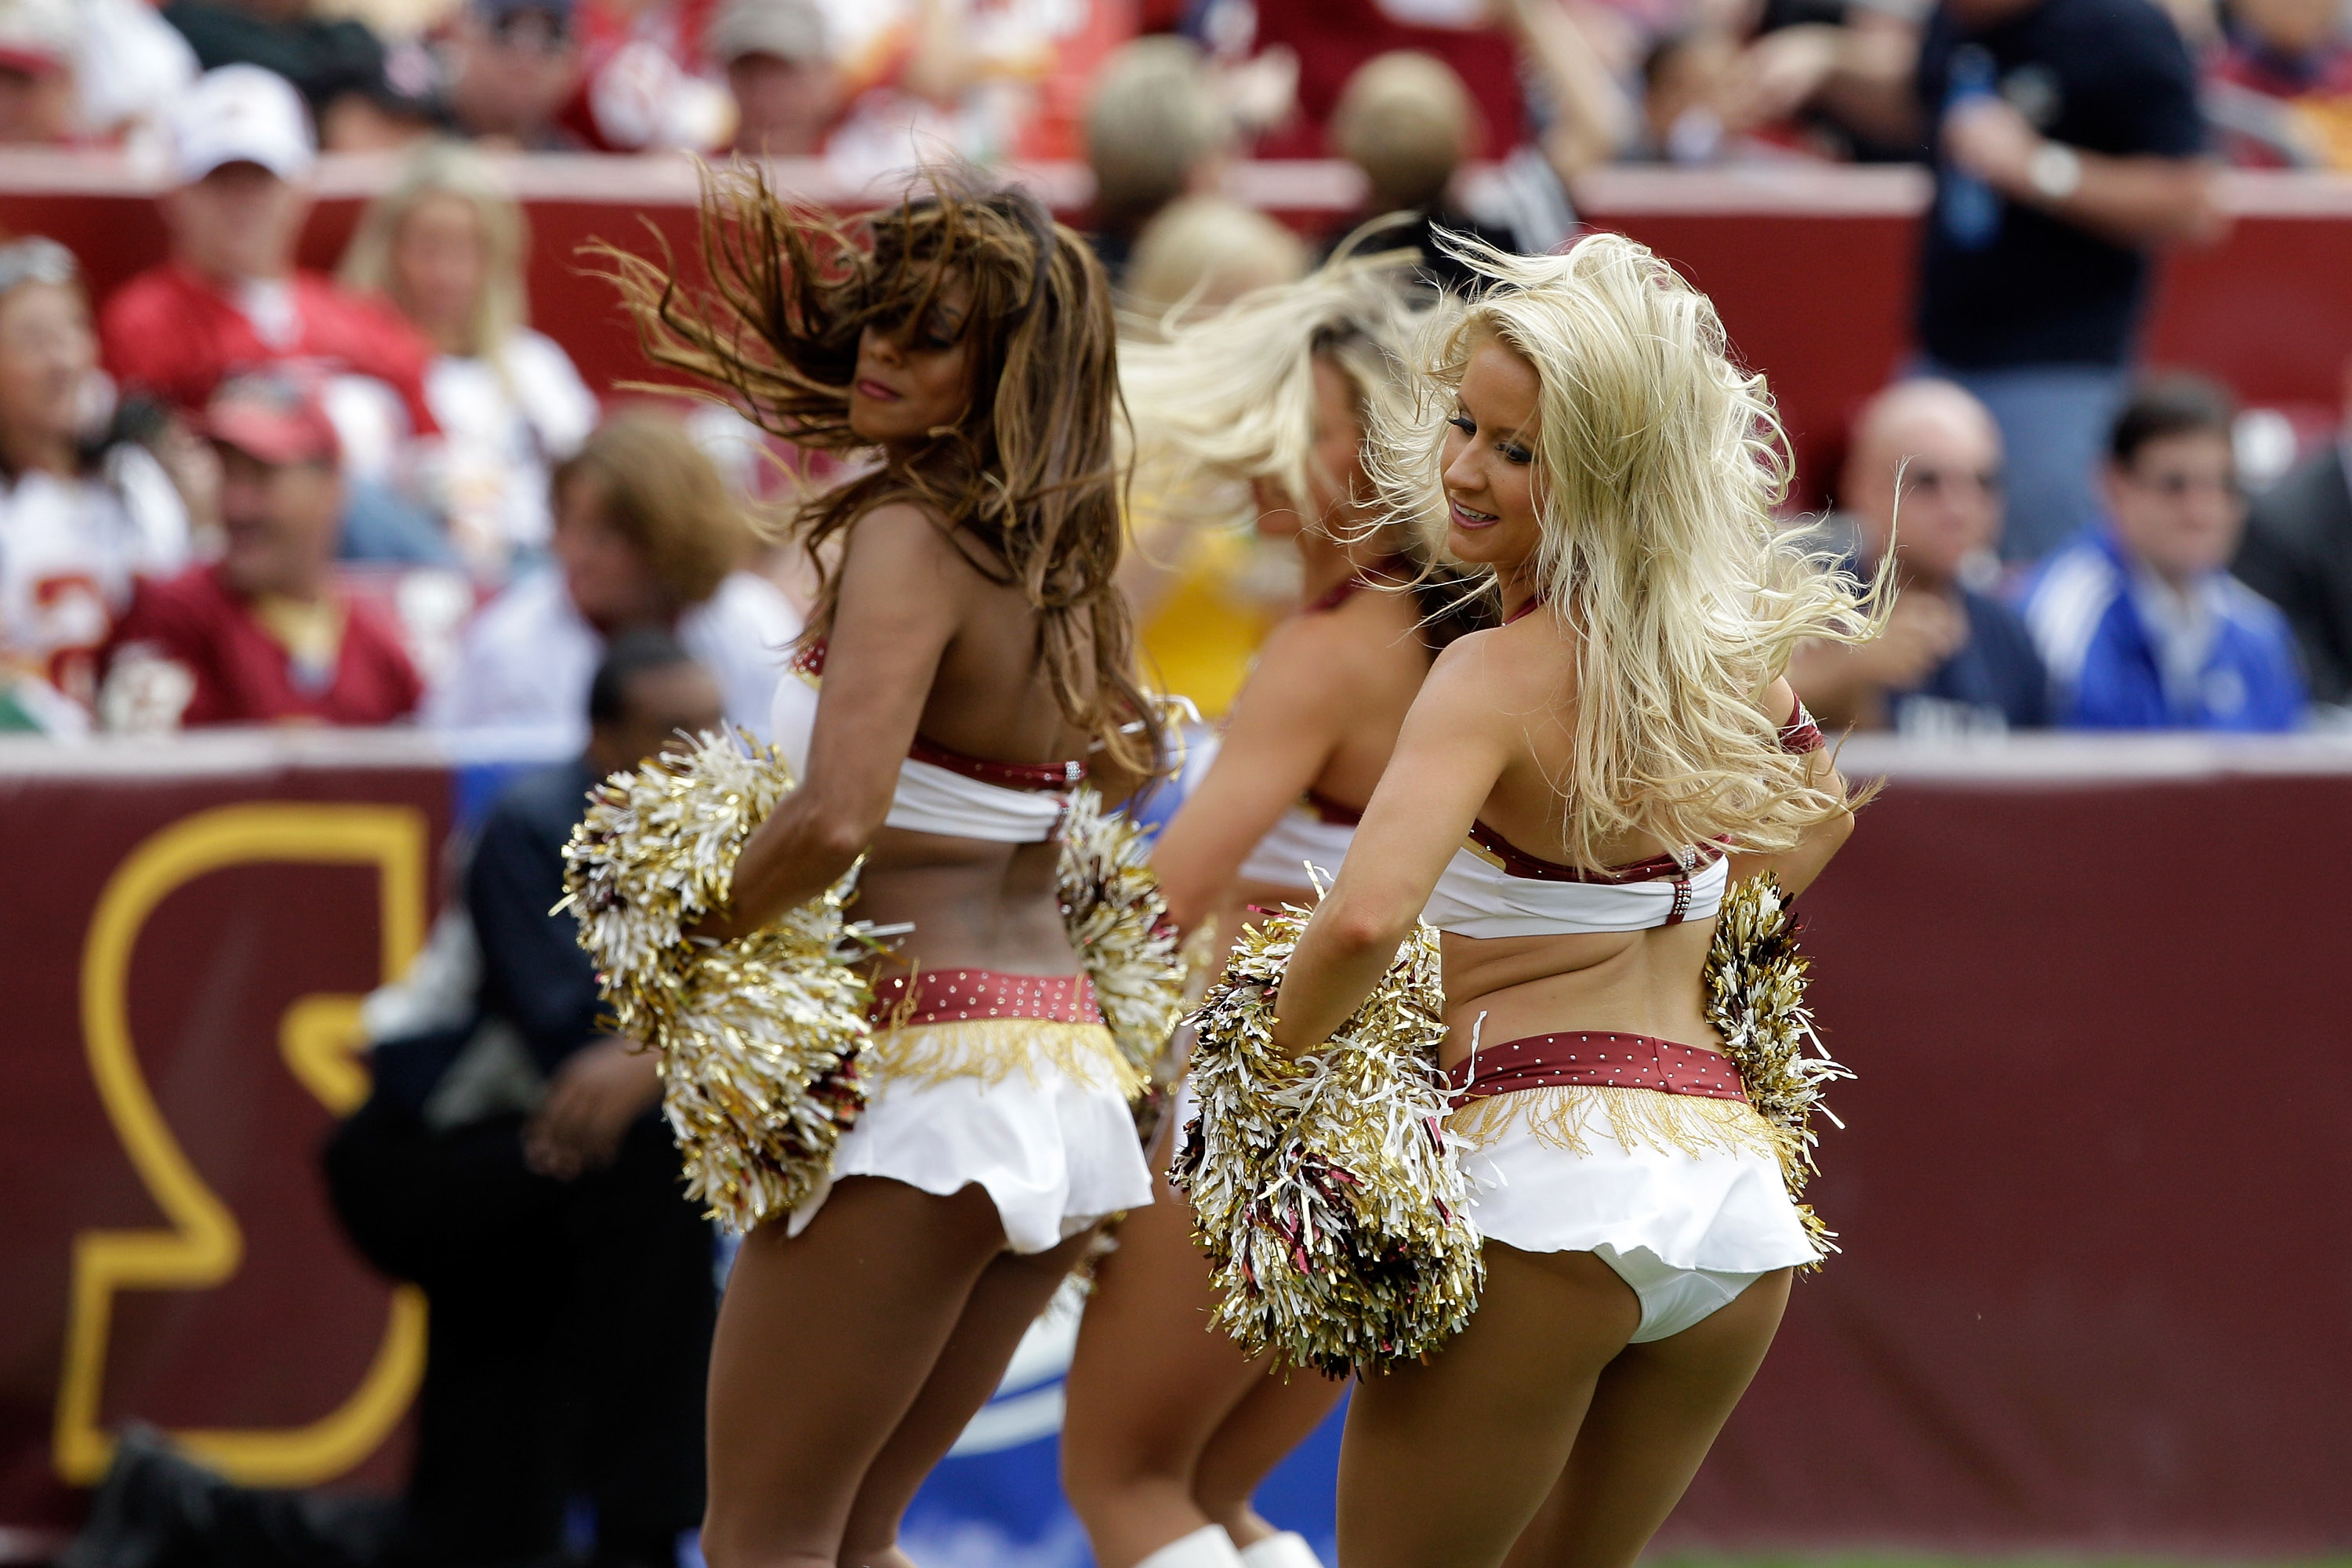 That Sexy pro cheerleaders ass matchless message